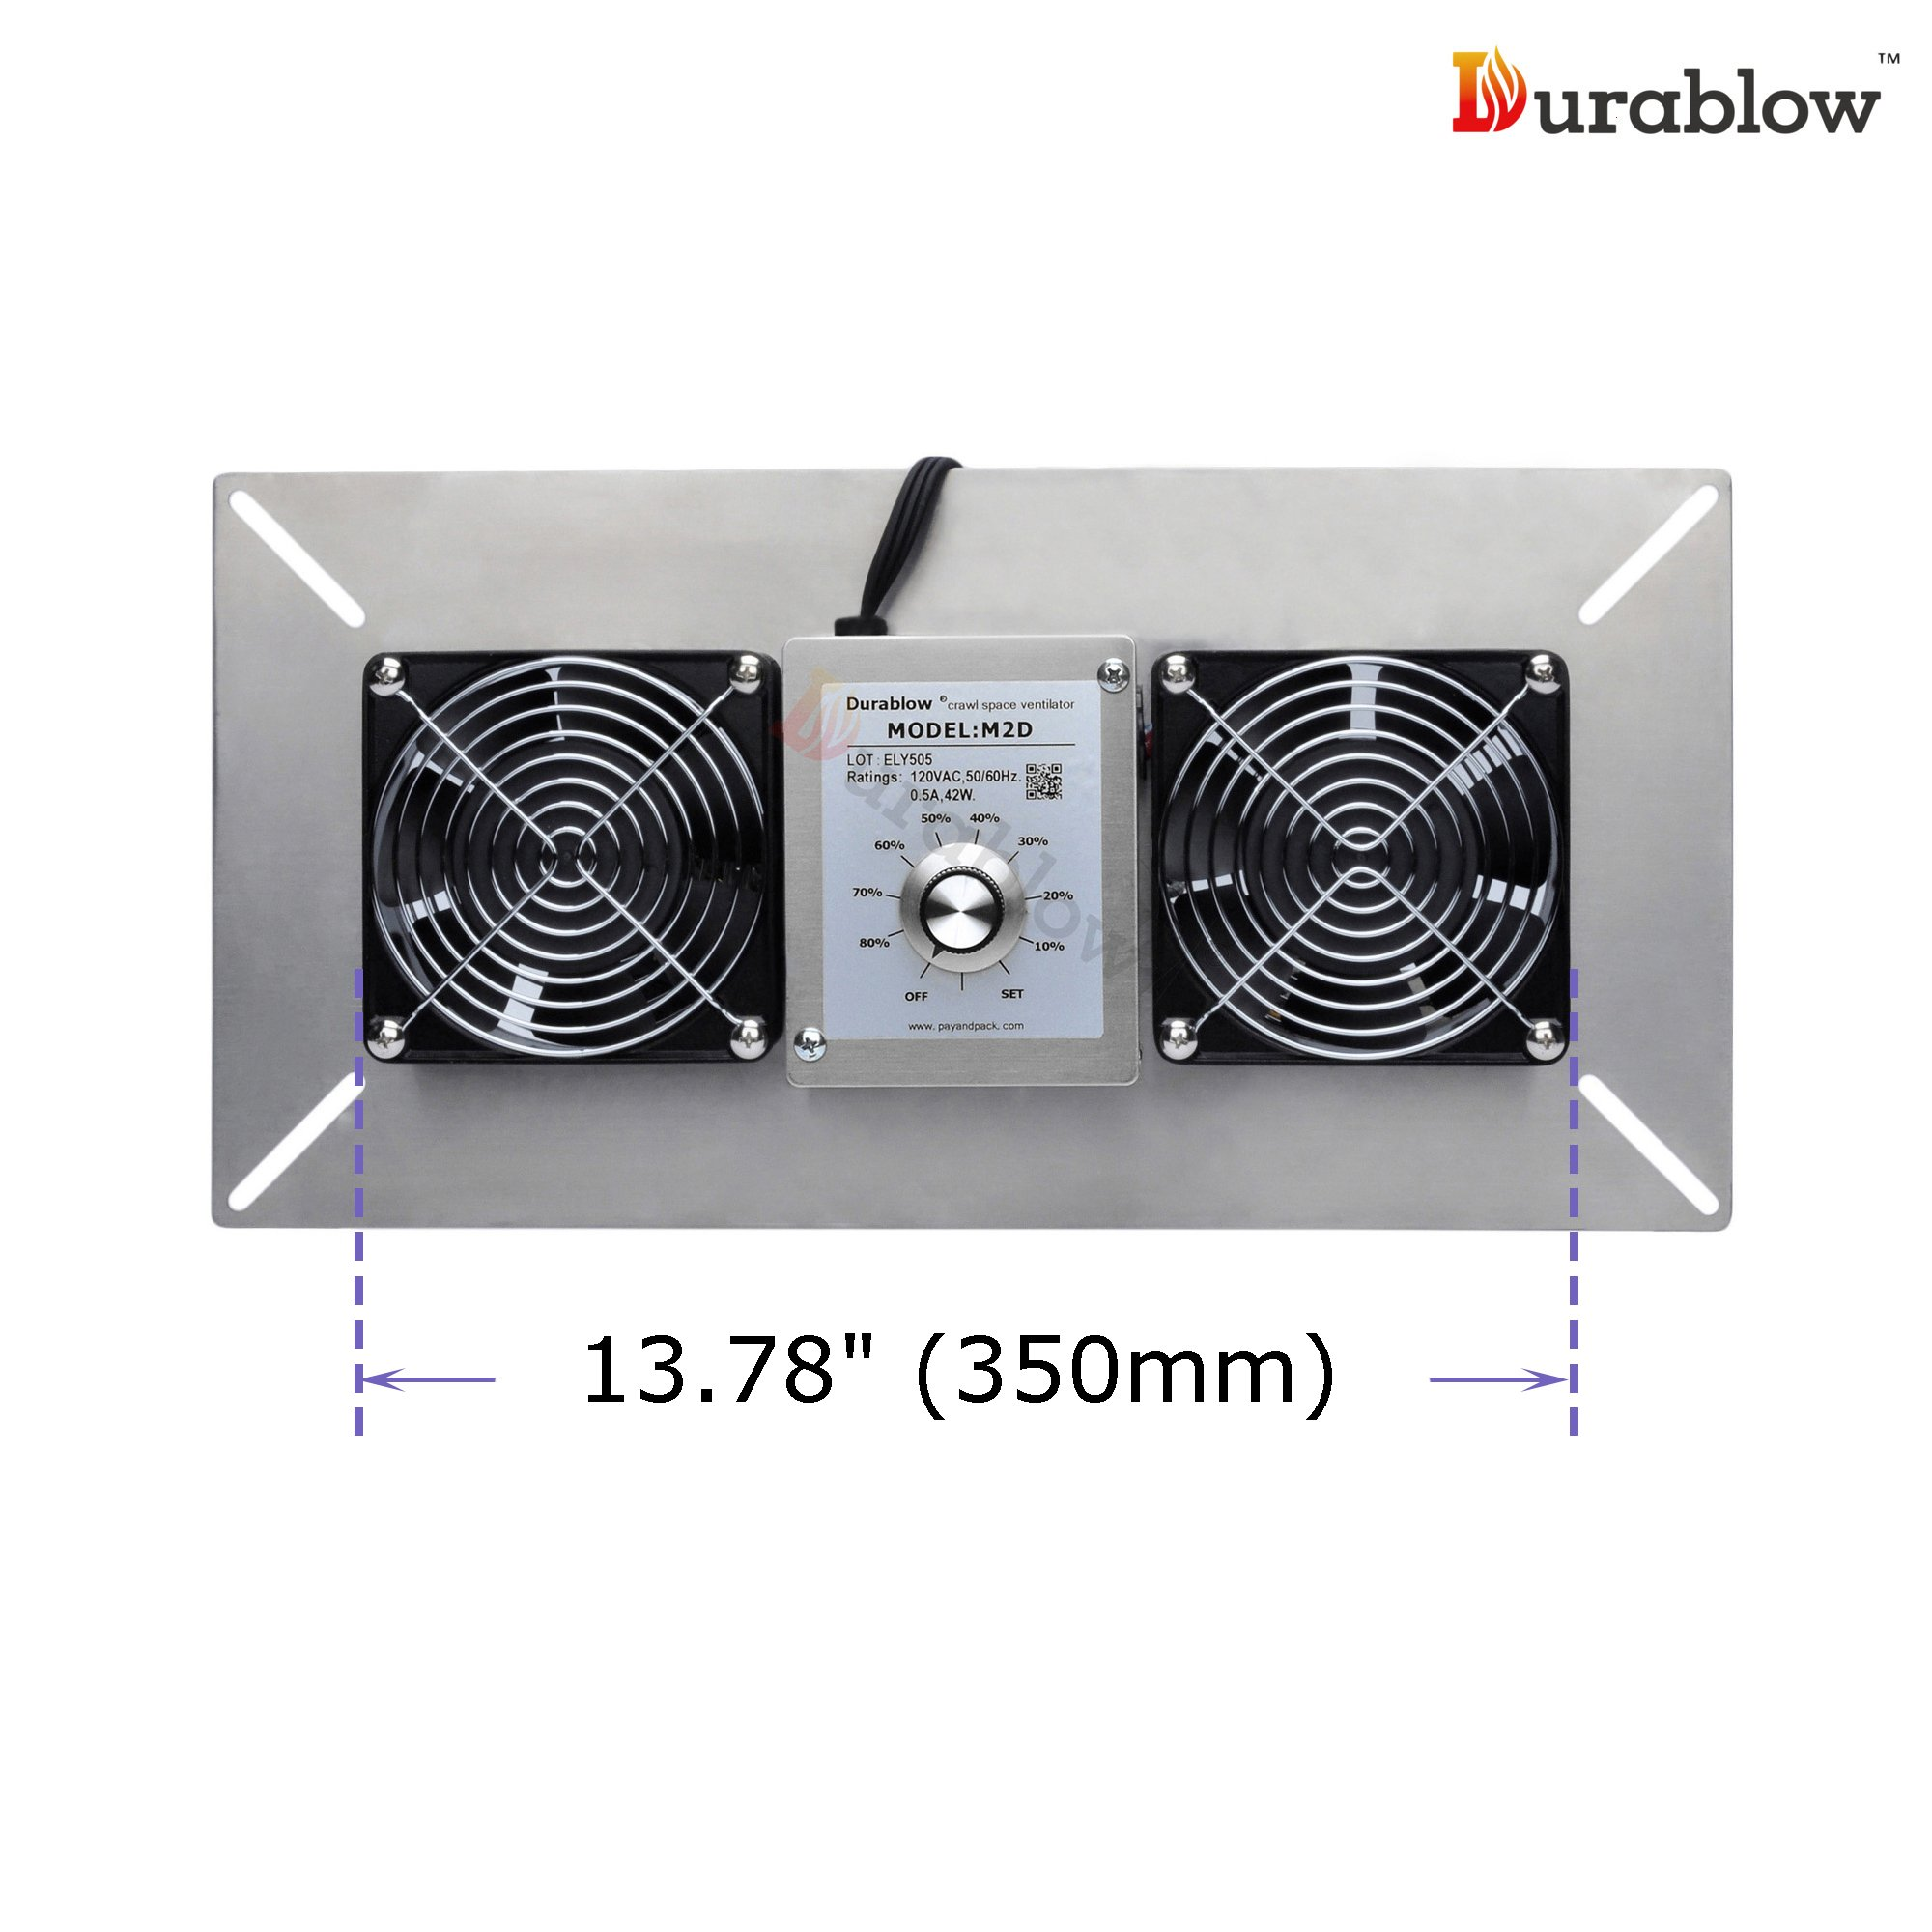 Durablow Stainless Steel Crawl Space Foundation Dual Fans Ventilator + Built-in Dehumidistat (Stainless Steel 304, M2D) by Durablow (Image #3)